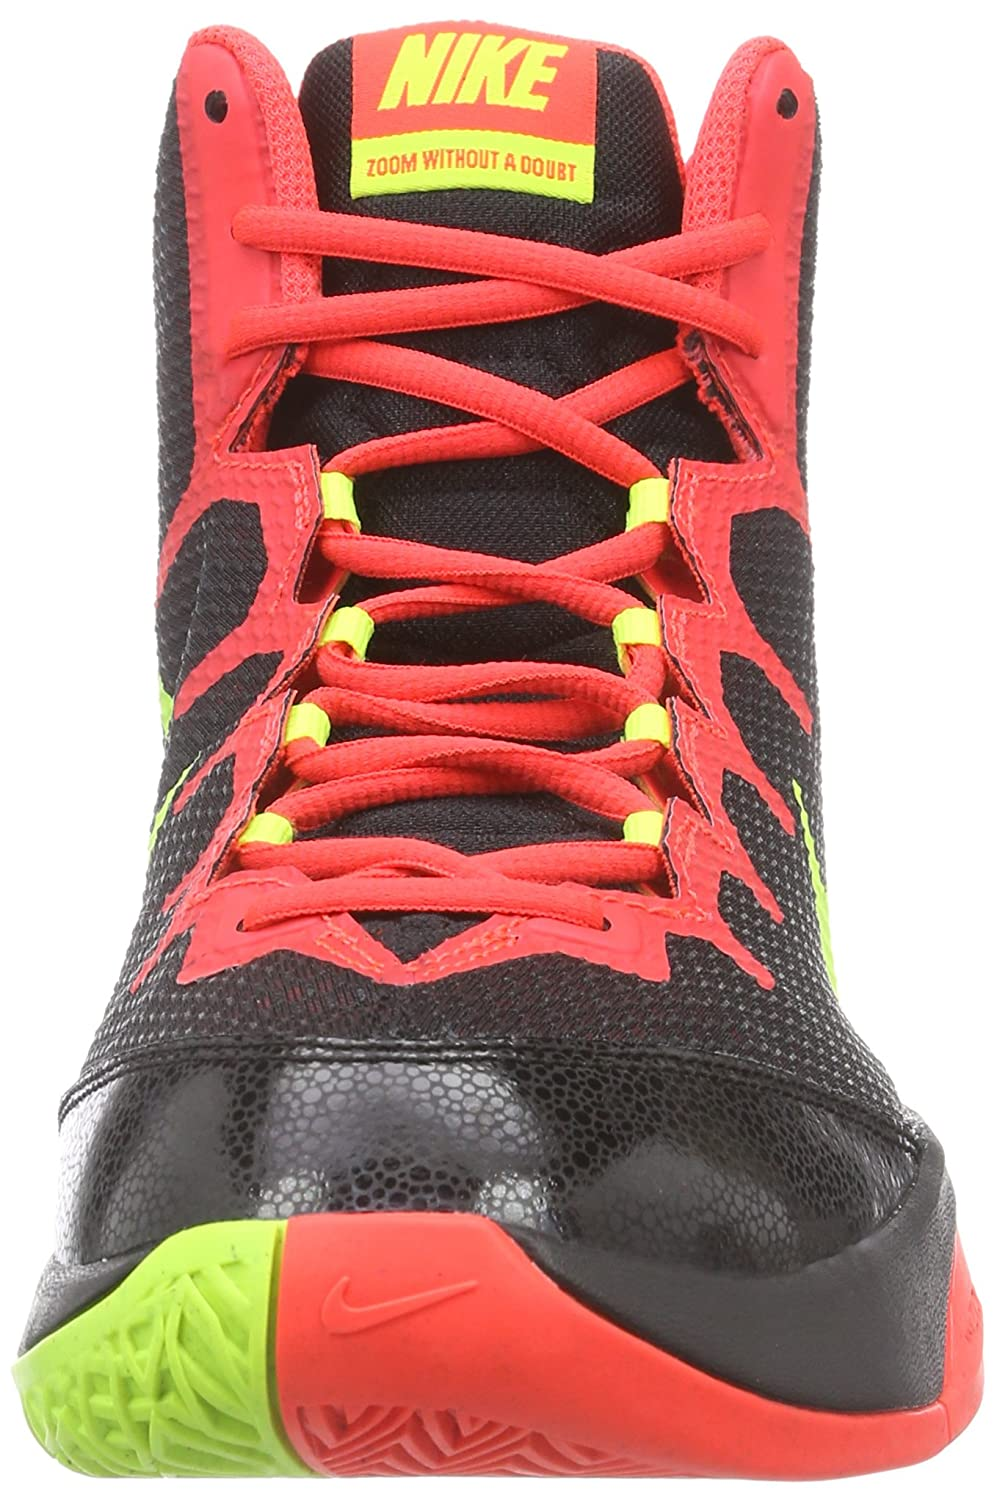 Nike Zoom Without Without Without A Doubt Herren Basketballschuhe B00Q6YHTVM  5797f2